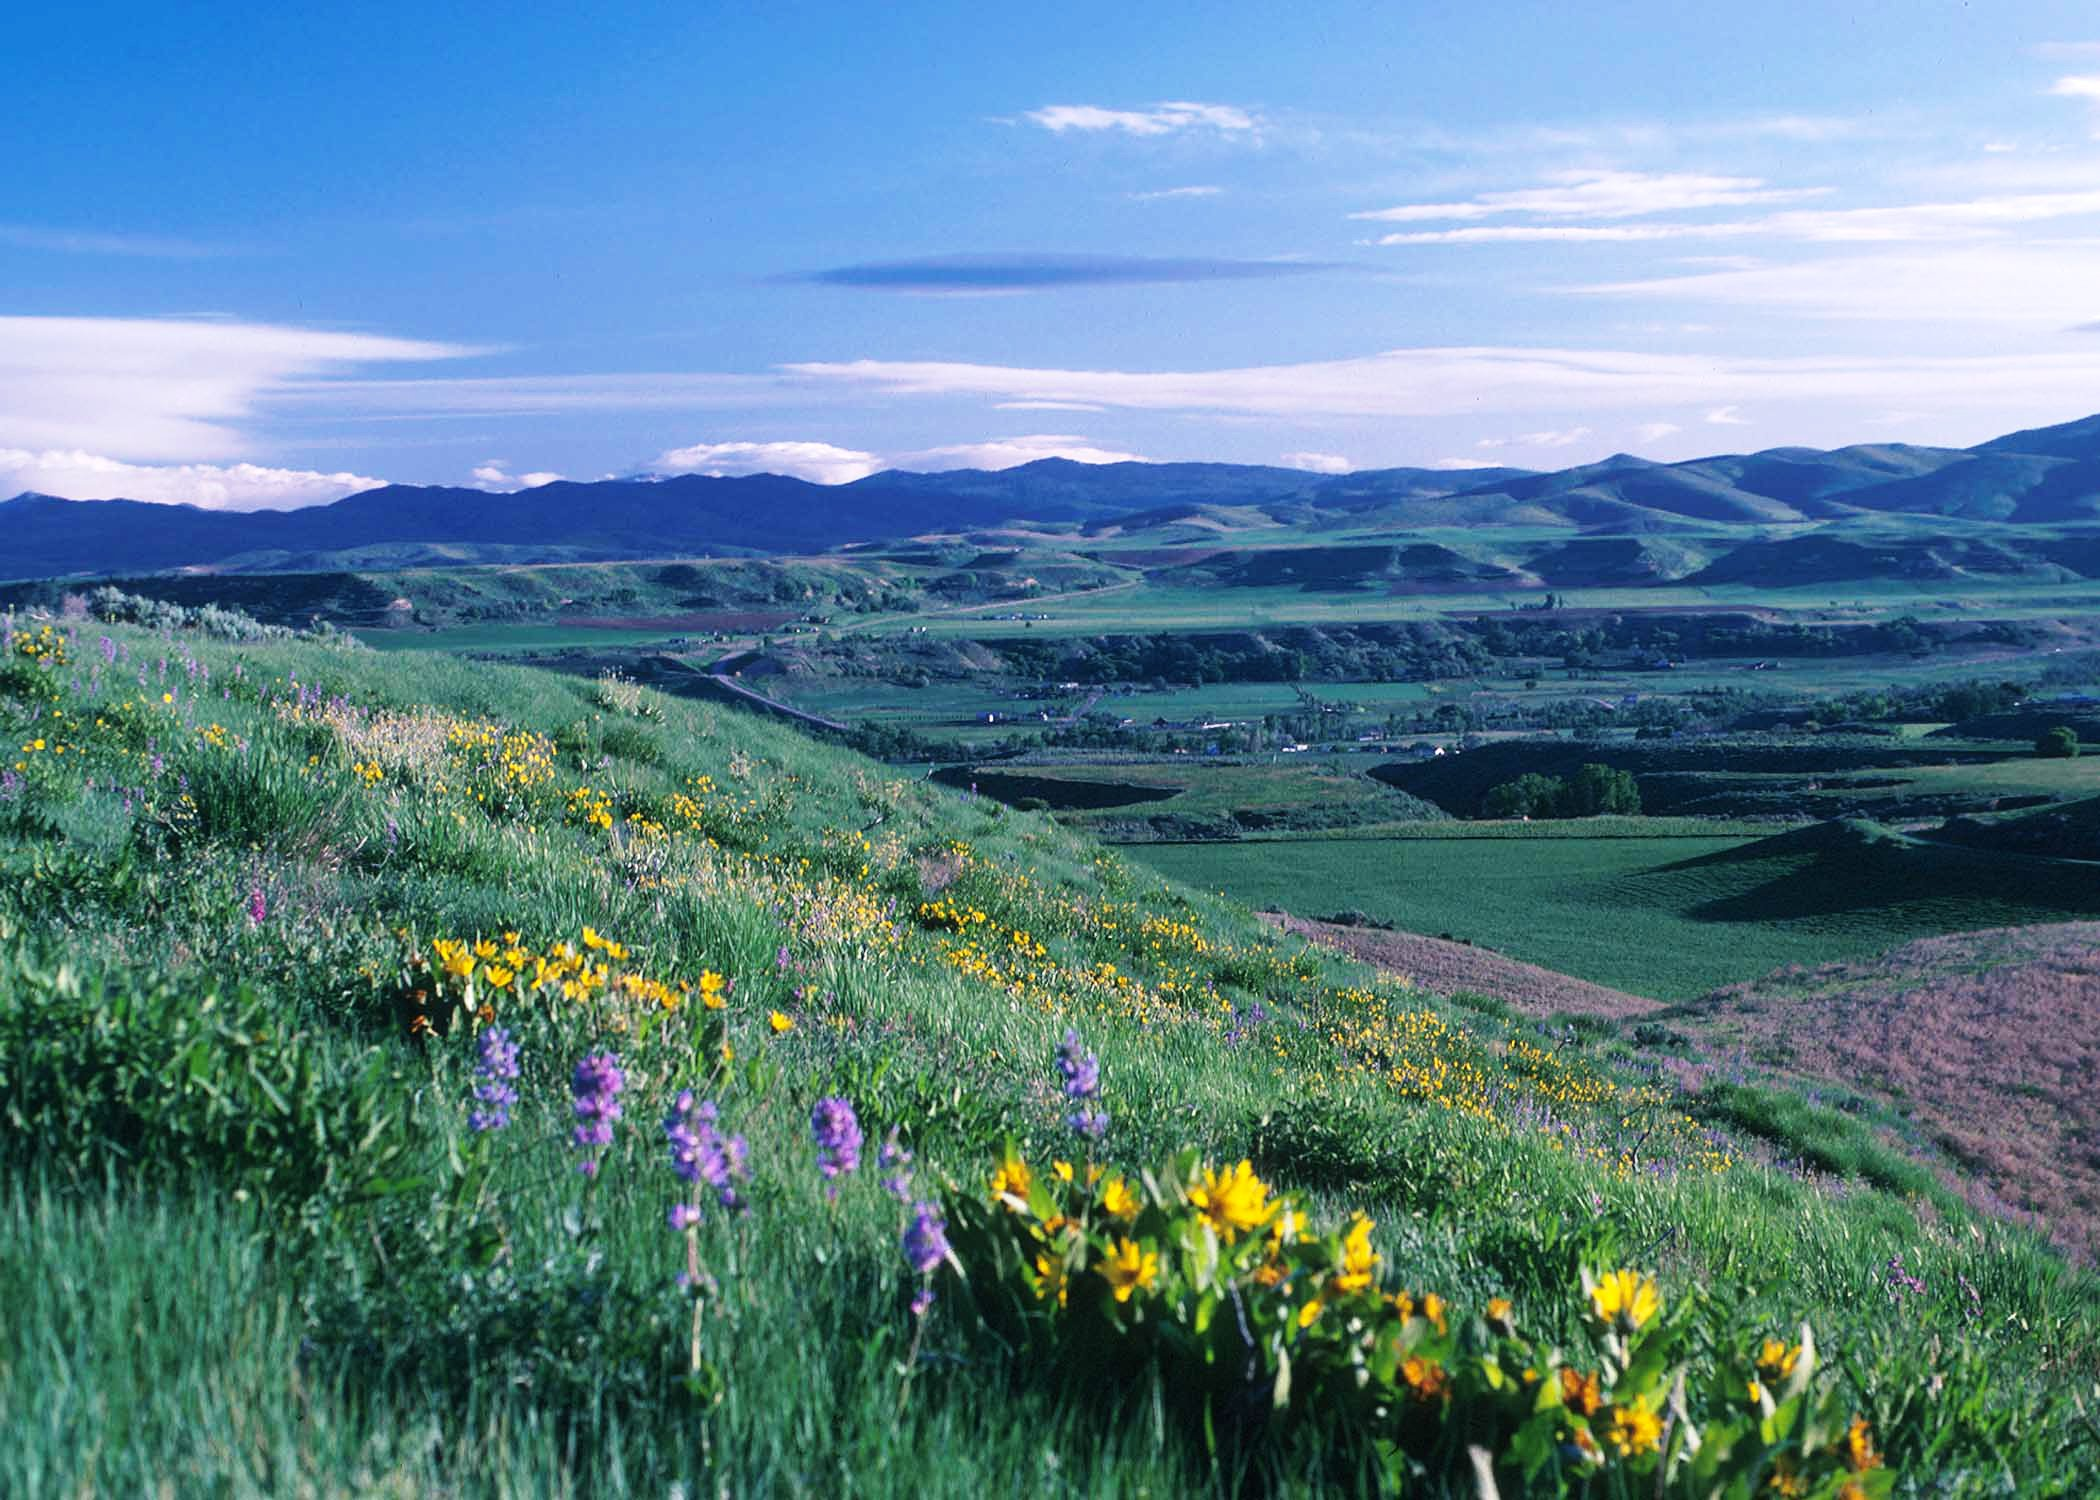 Beautiful image of mountains in background and wildflowers in foreground